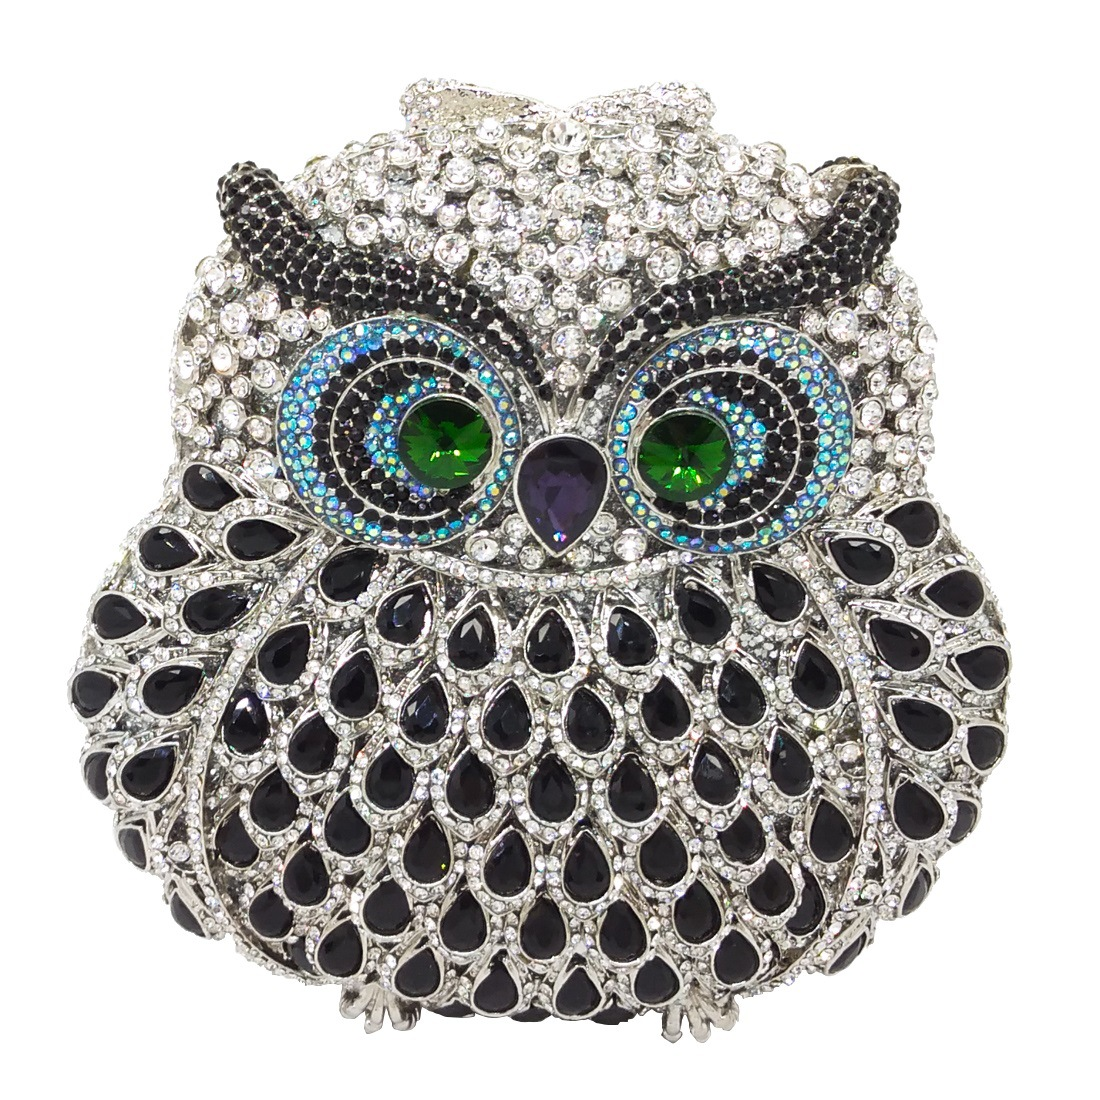 Bags for Women Owl Women Diamond Evening Clutch Bag Party Crystals Clutches Wedding Purses Ladies Hollow Out Handbags Bolsas